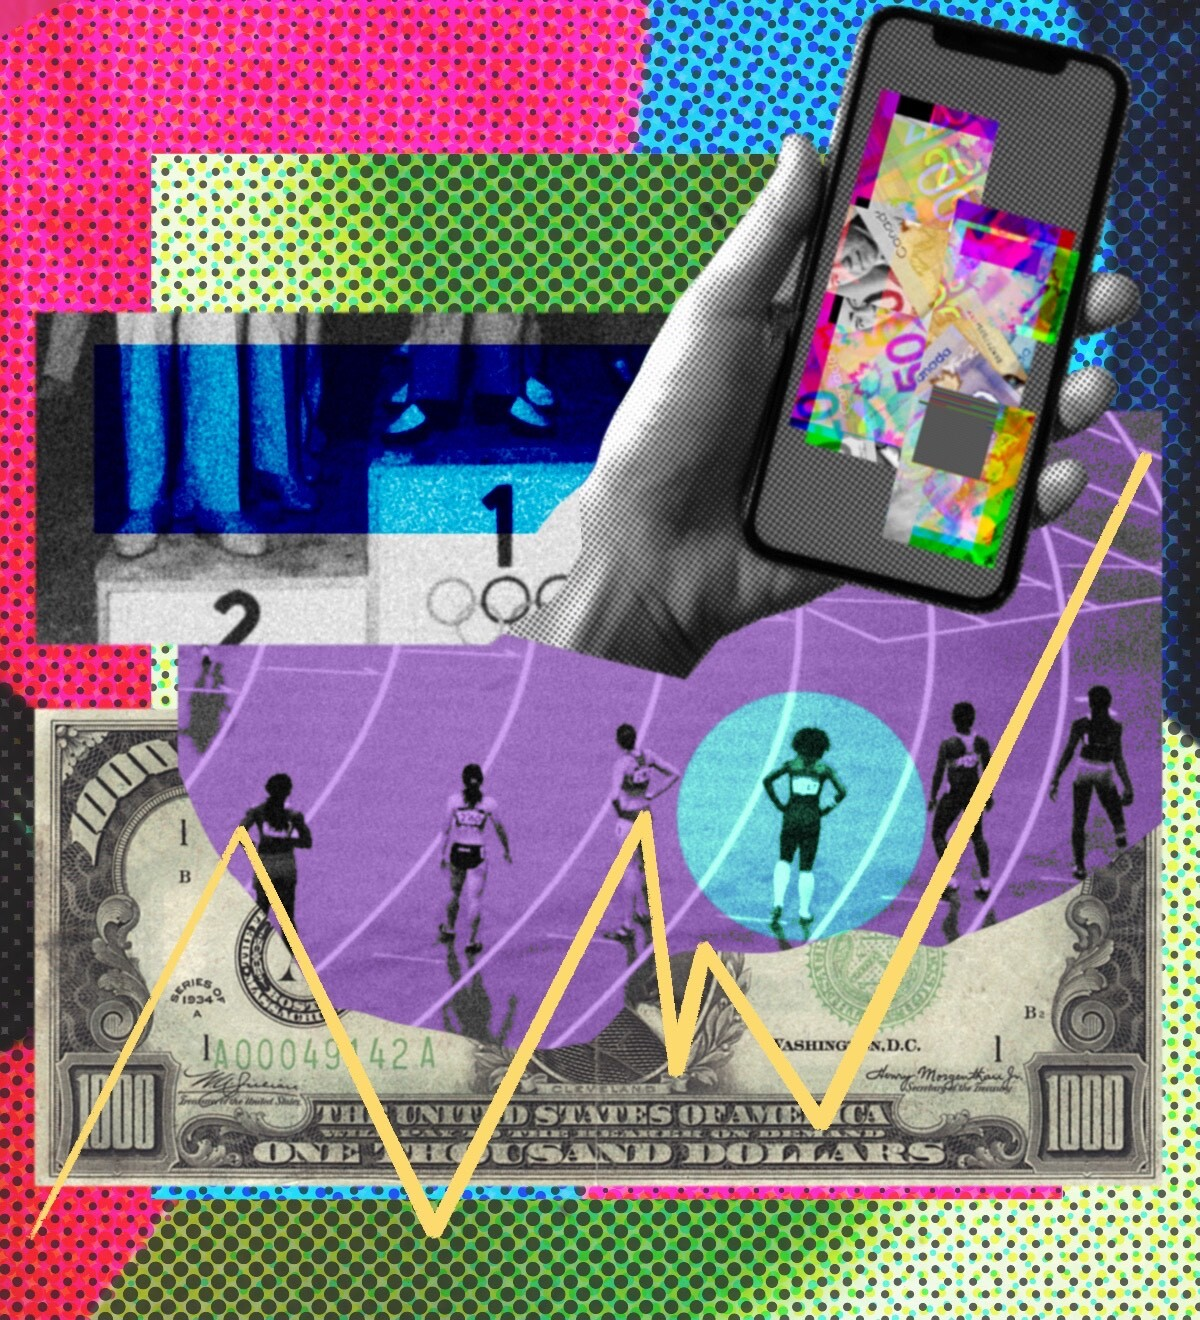 A collage depicting Olympic athletes standing in a line, a $1,000 bill and a hand holding a cell phone.